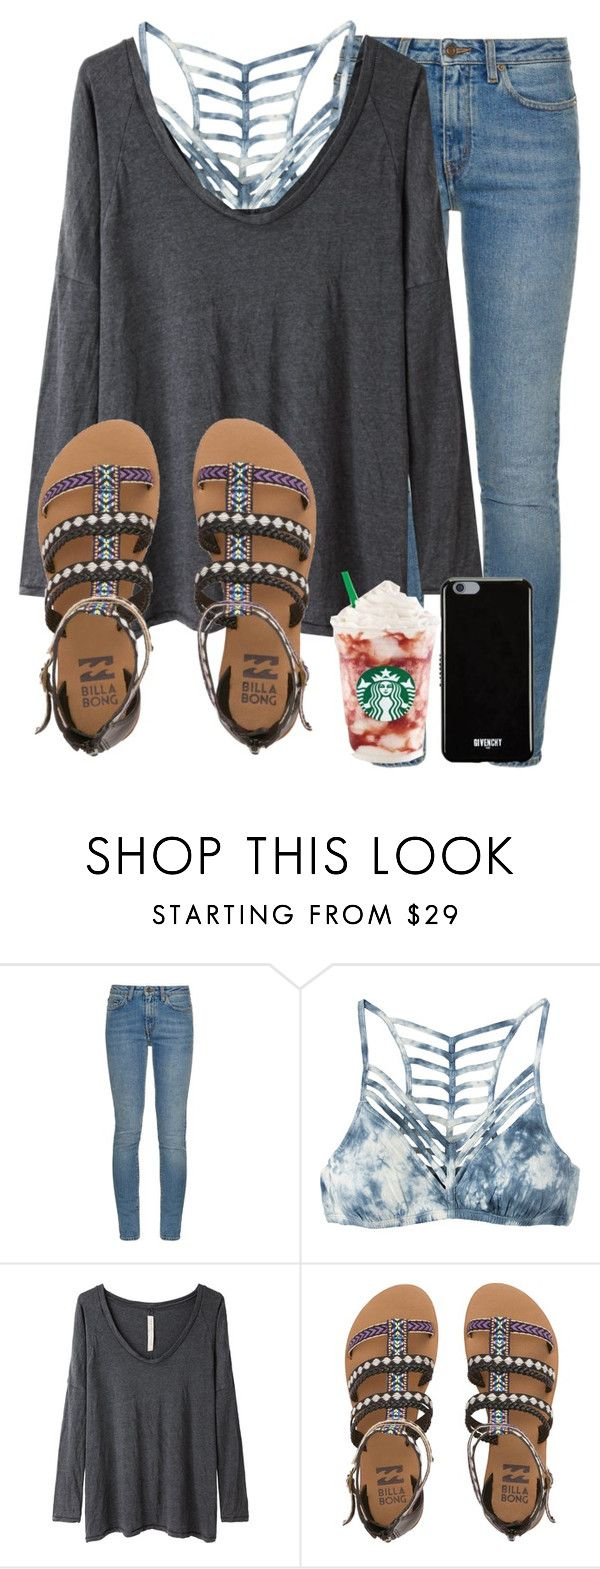 """weekly update in the d🌟"" by madiweeksss ❤ liked on Polyvore featuring Yves Saint Laurent, RVCA, Raquel Allegra, Billabong and Givenchy"